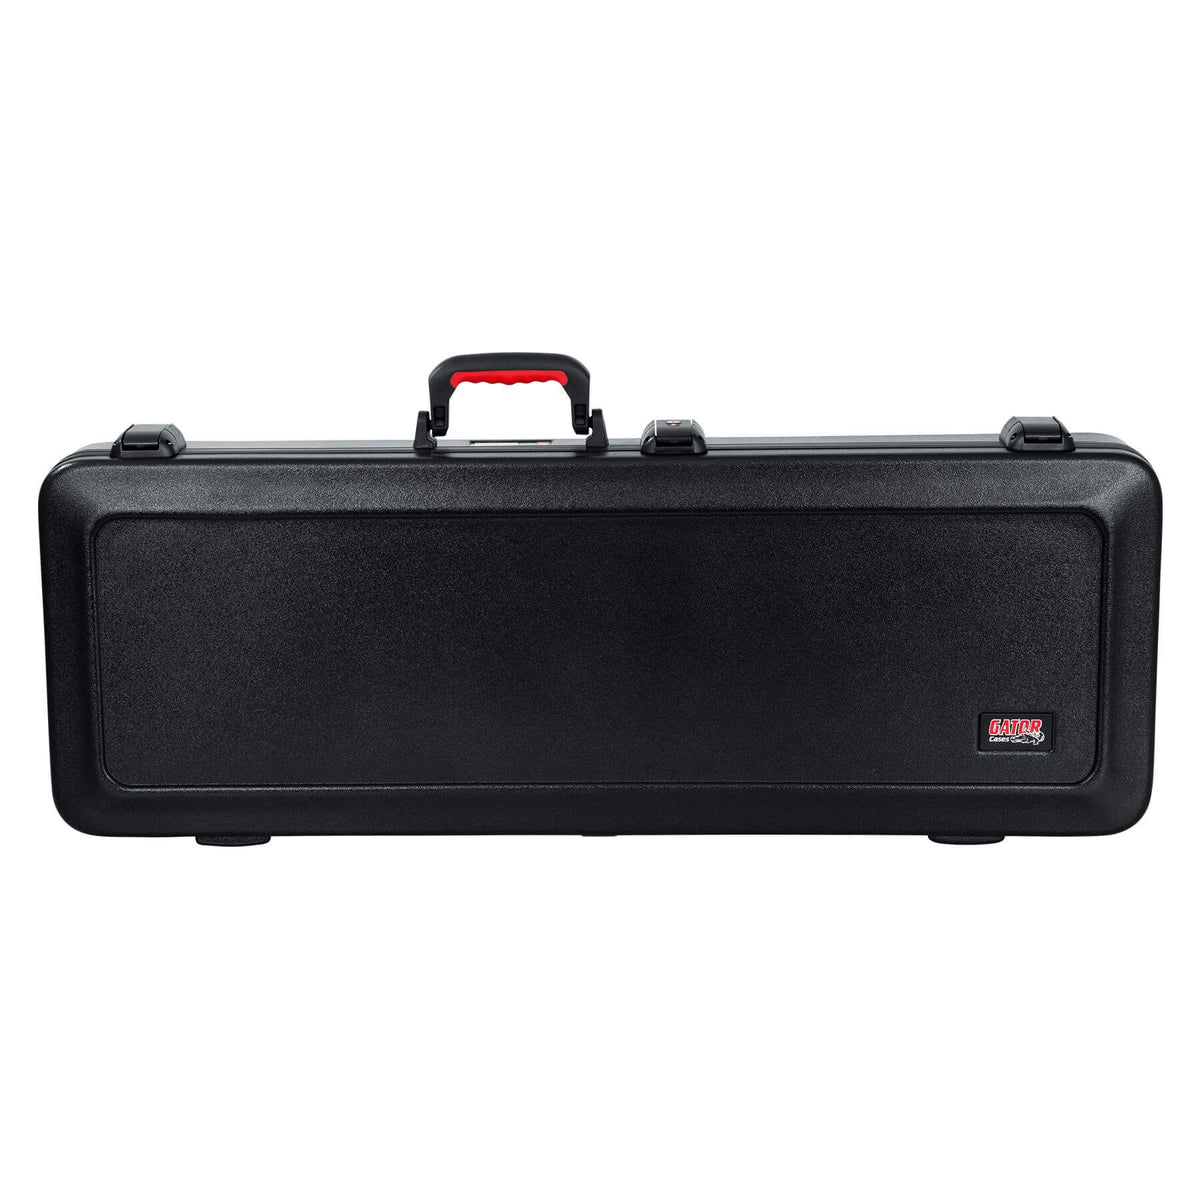 Gator TSA Electric Case fits Fender Squier Affinity Stratocaster